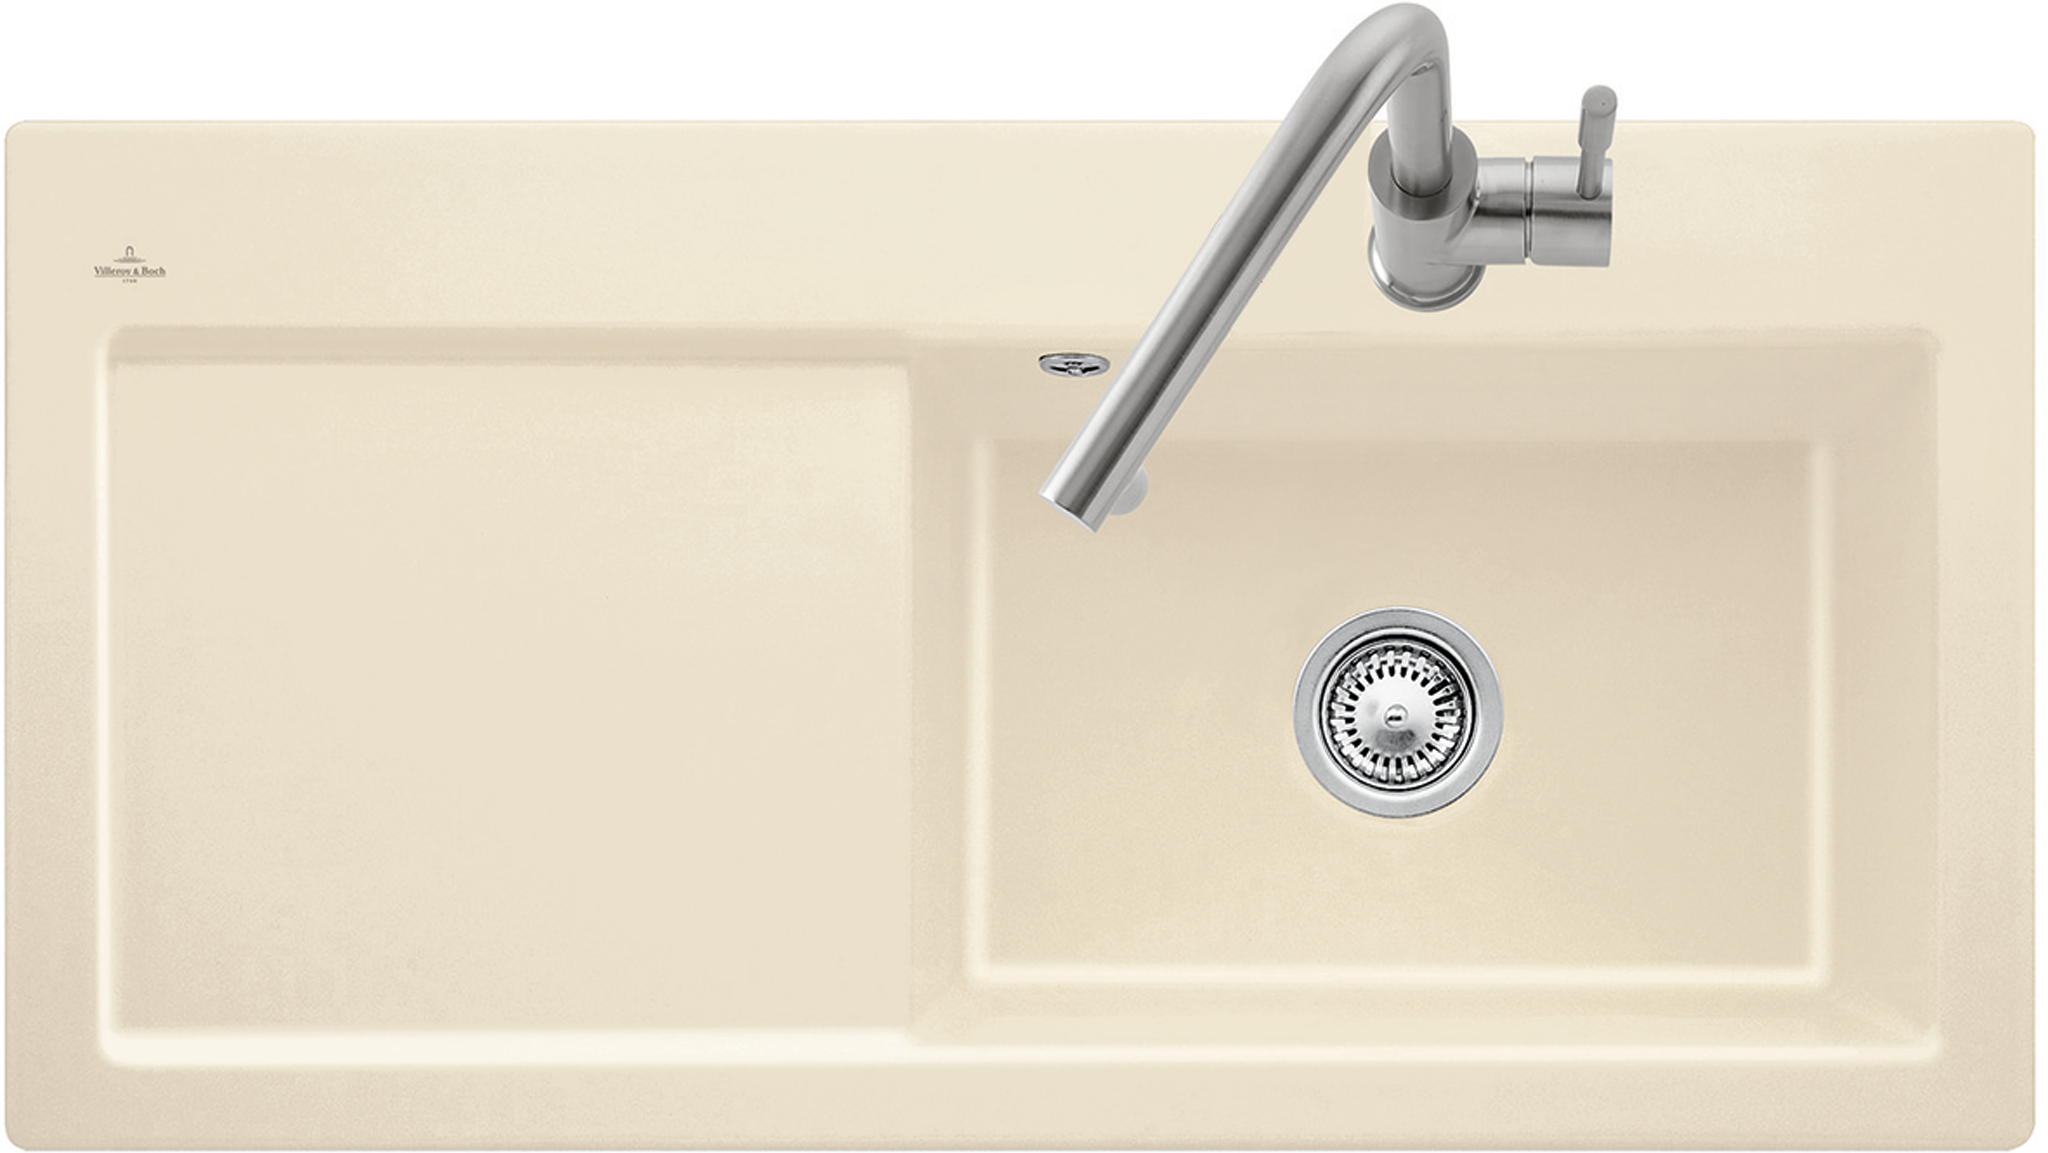 Subway Flat Flush Fit Sinks